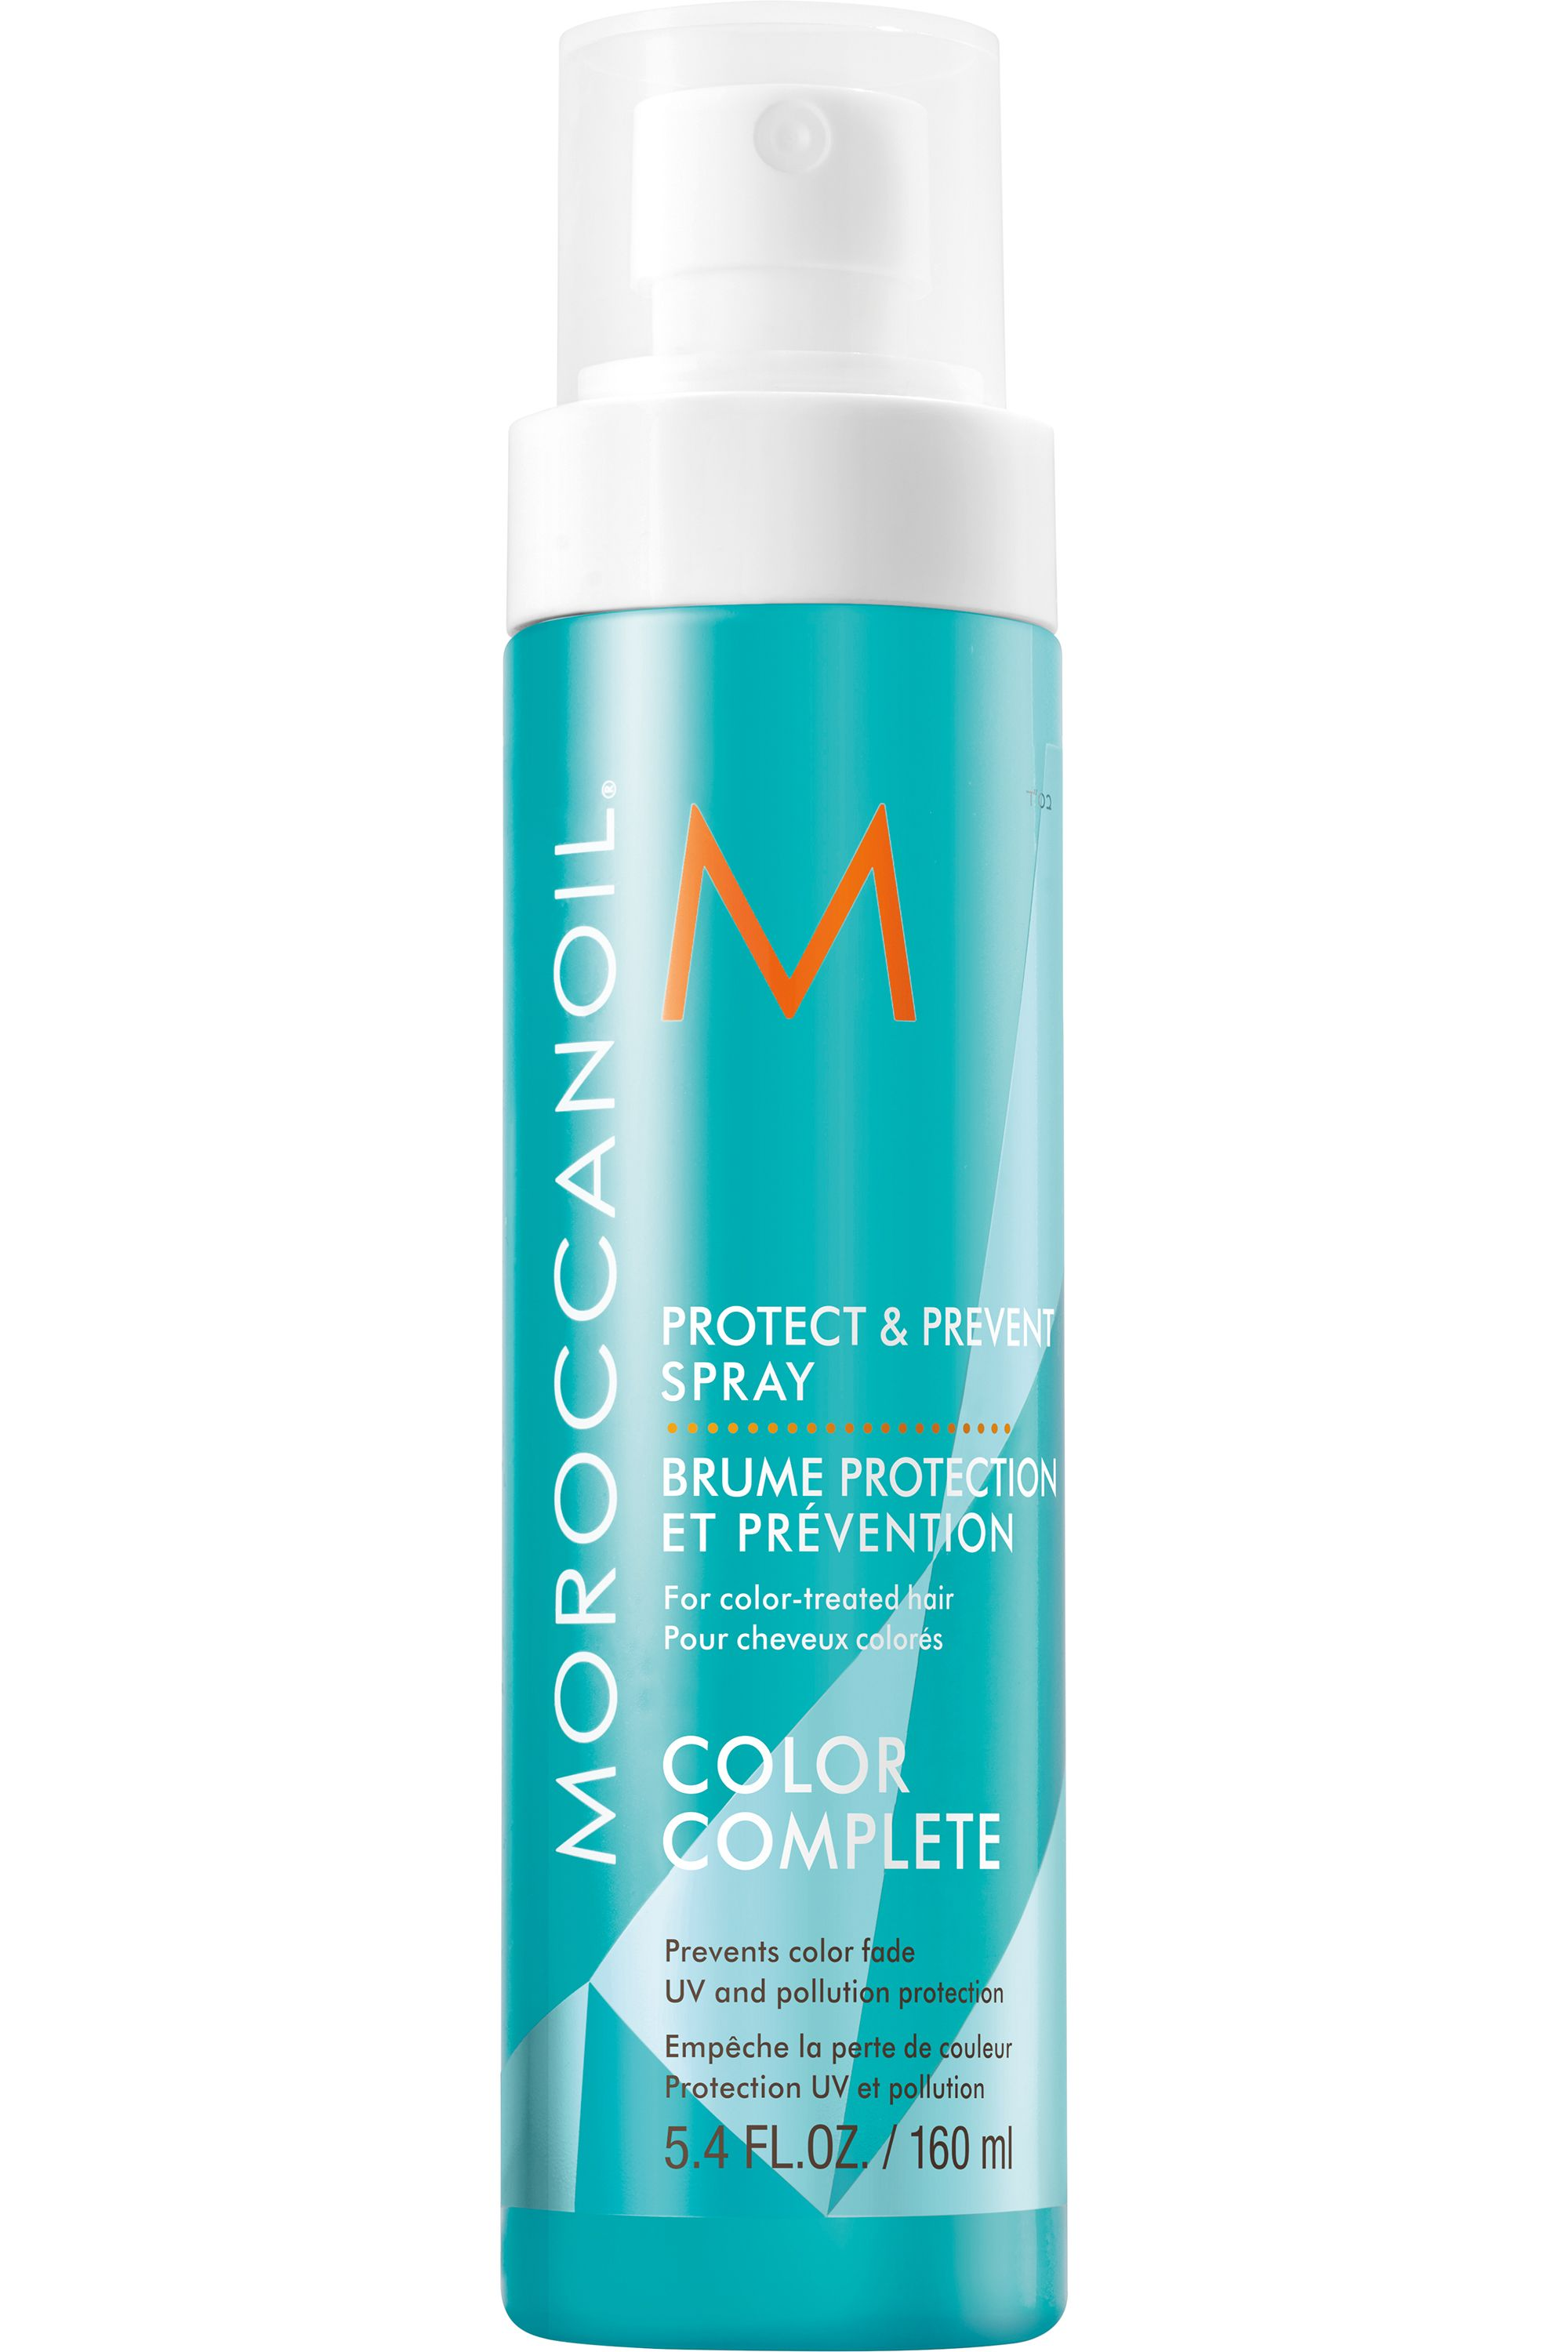 Blissim : Moroccanoil - Brume Protection - Brume Protection